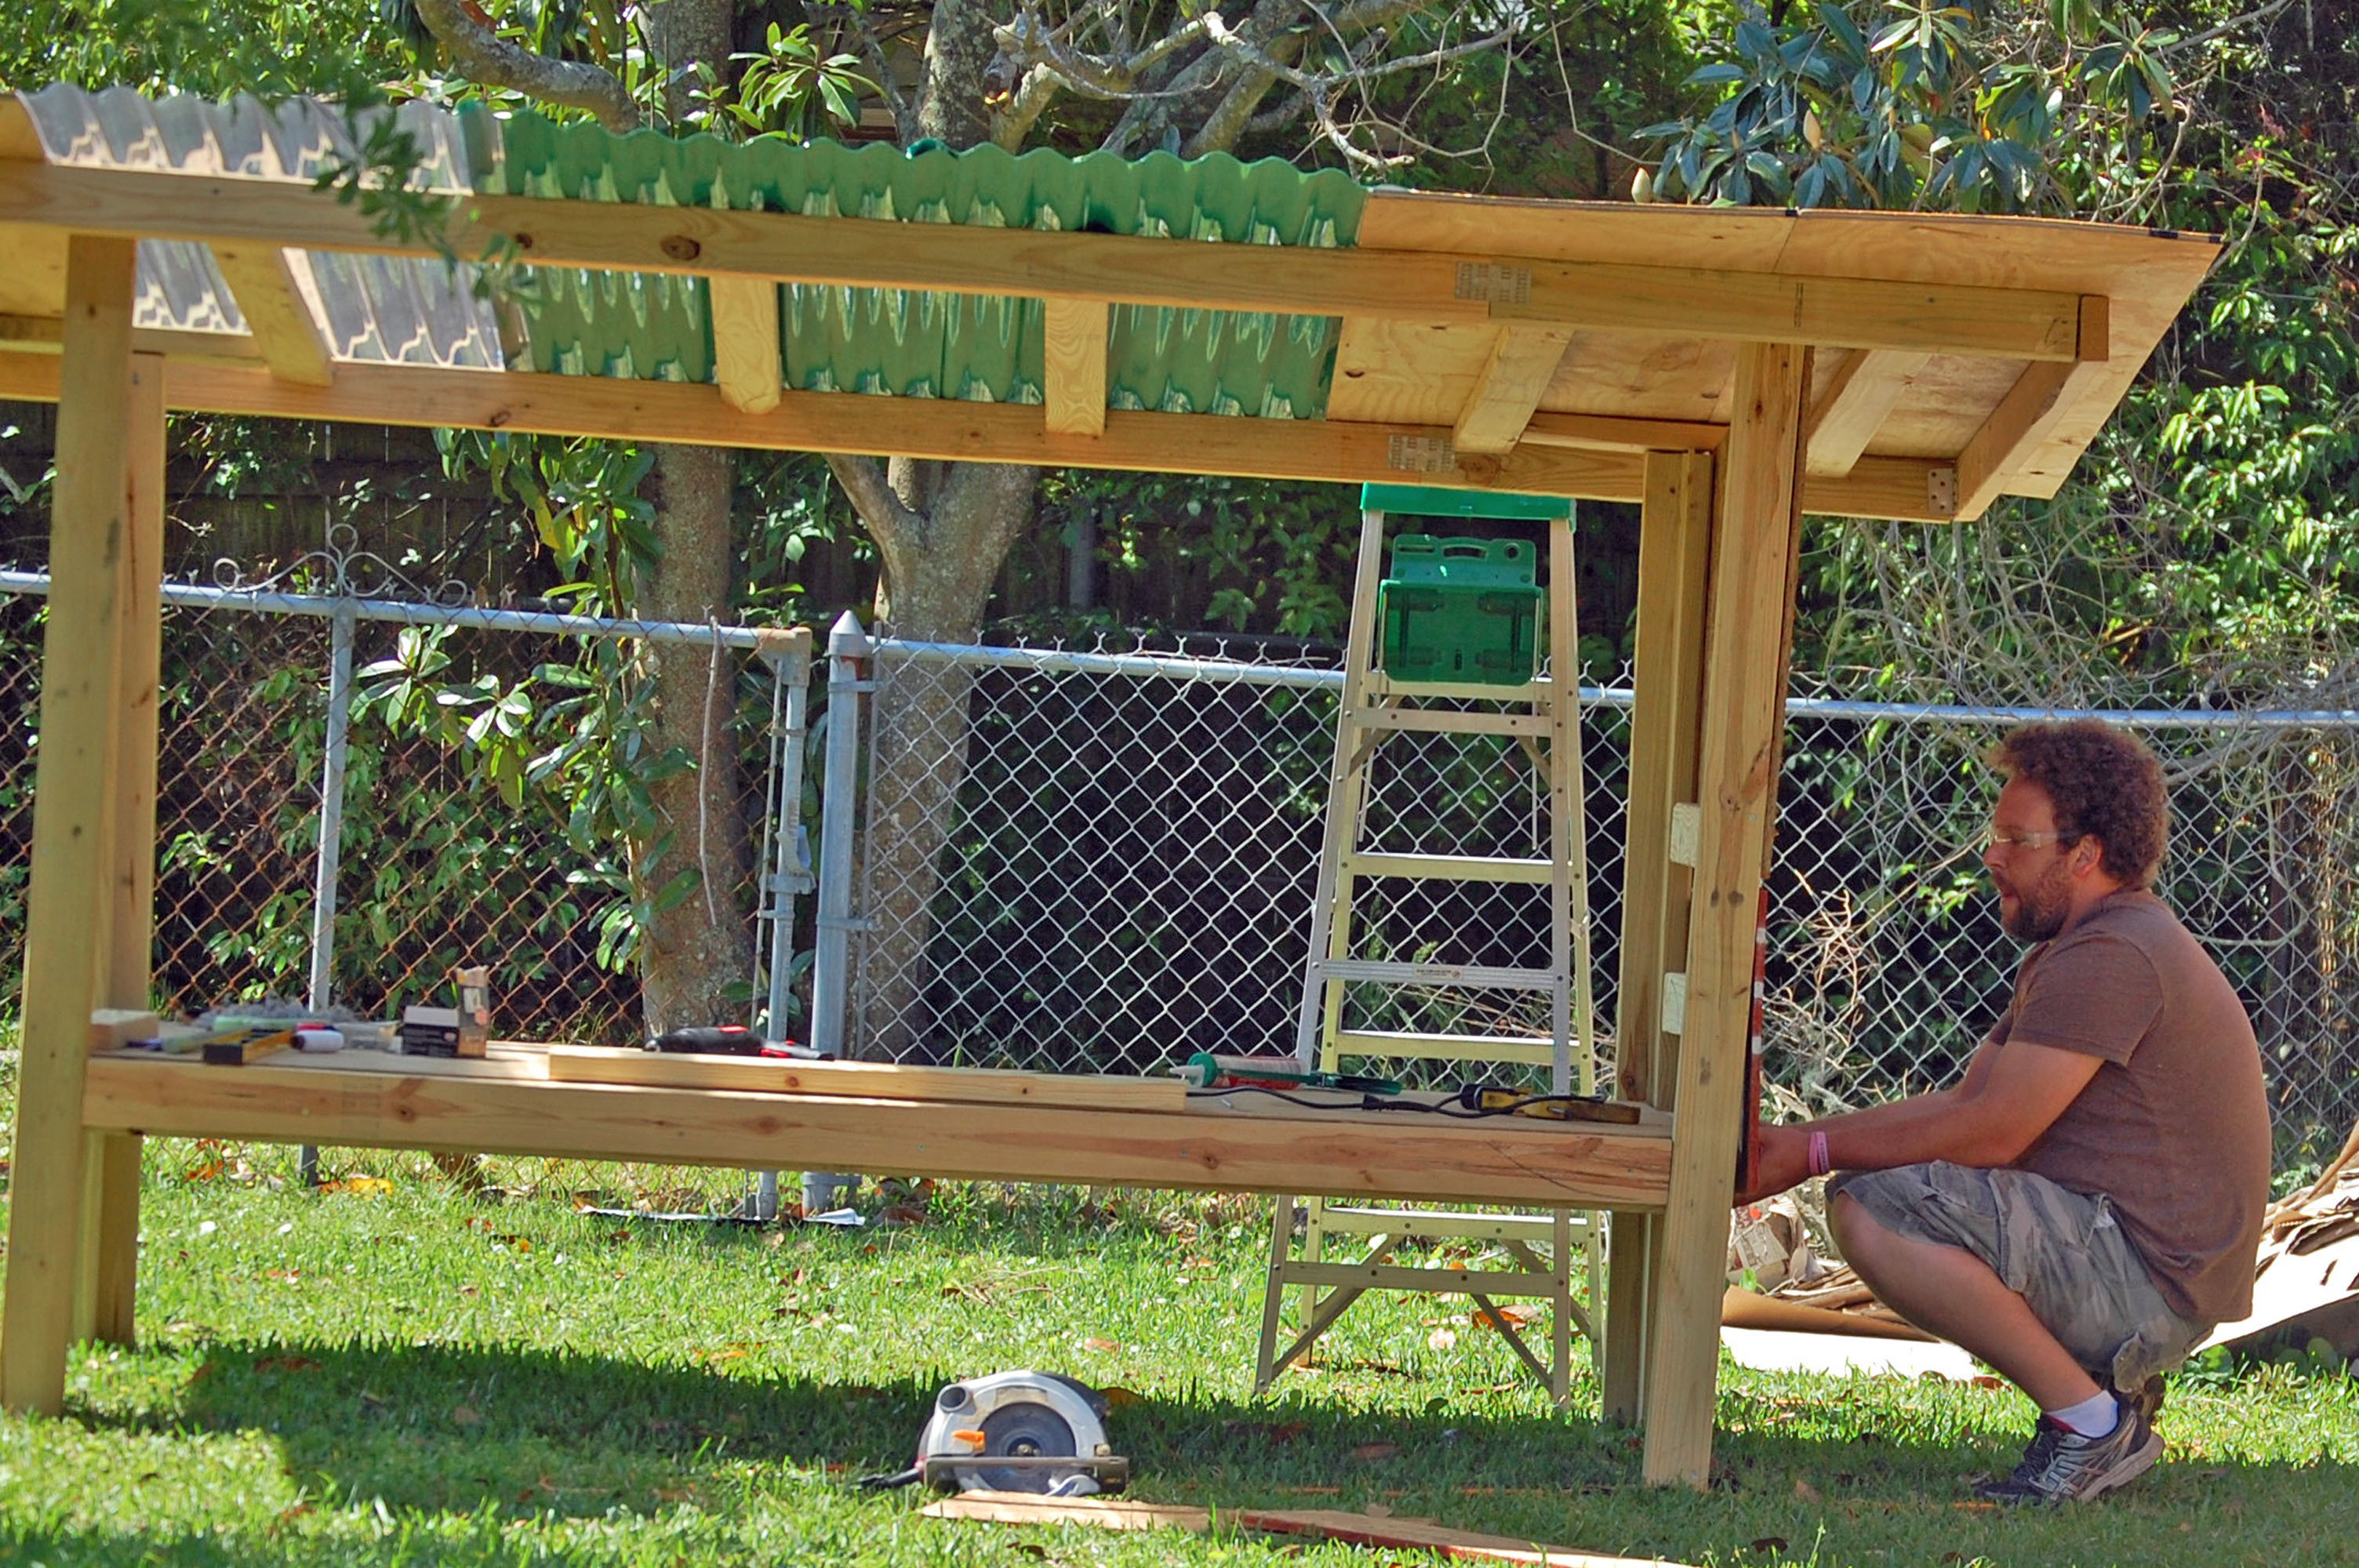 Best ideas about Chicken Coop DIY . Save or Pin Our DIY Chicken Coop From Recycled Materials Now.